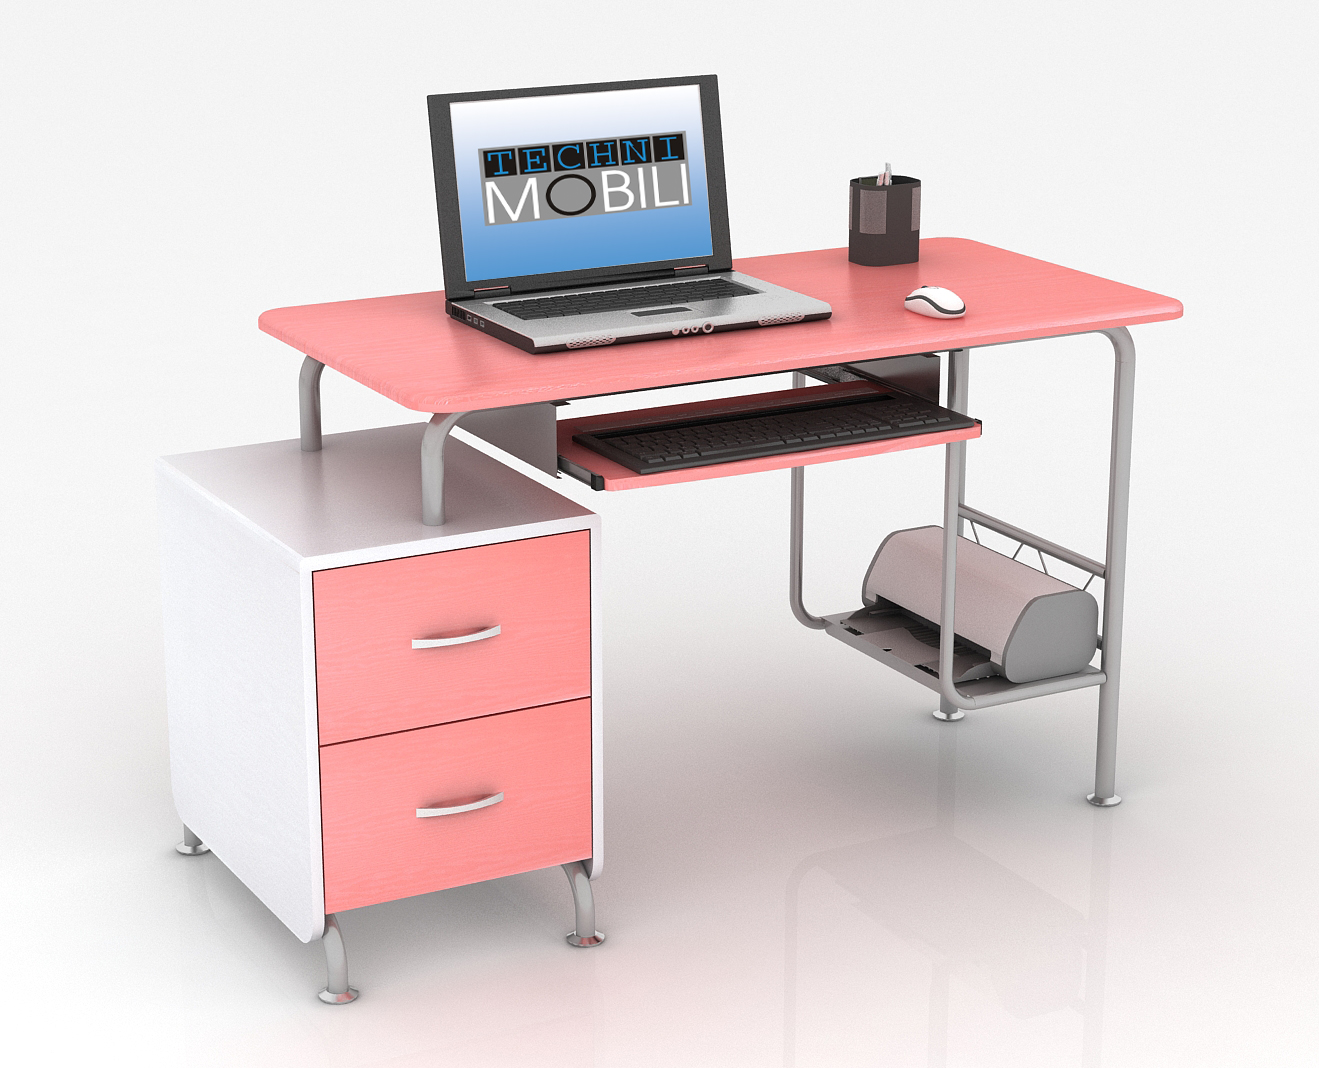 techni mobile of com mobili viewing gallery multifunction walmart regarding desk computer attachment photo workstation photos furniture